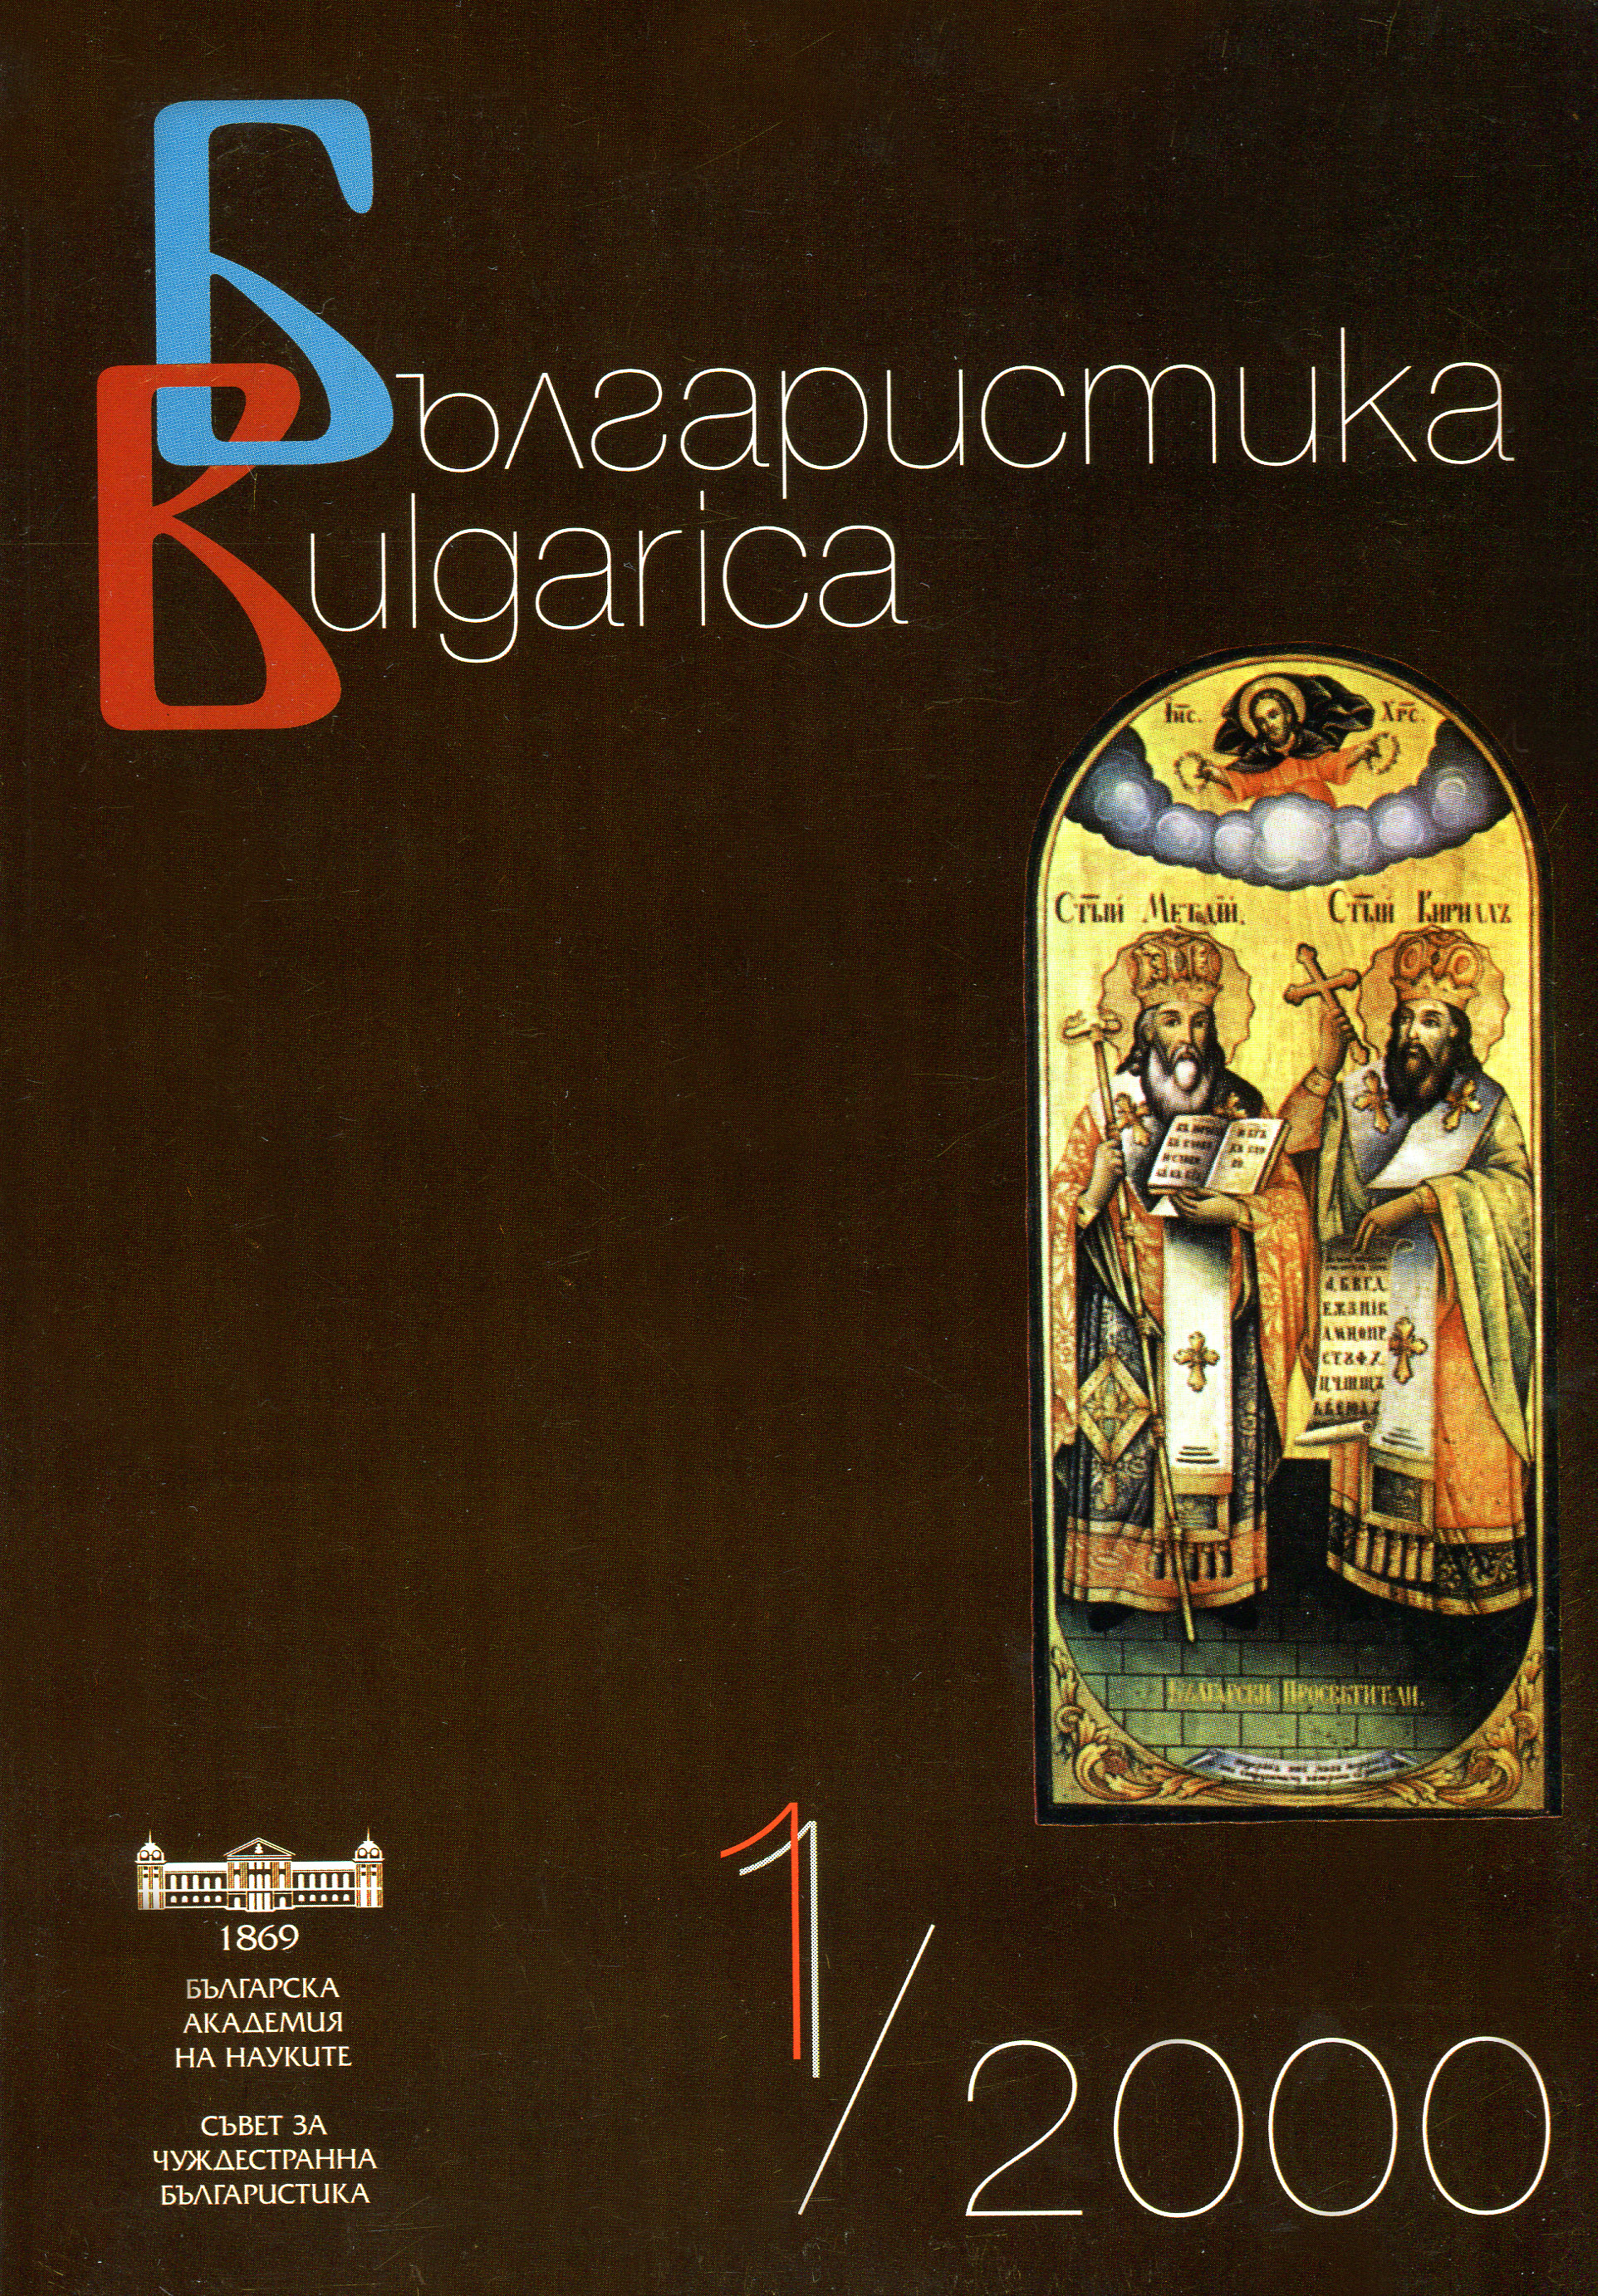 Bulgarica Cover Image